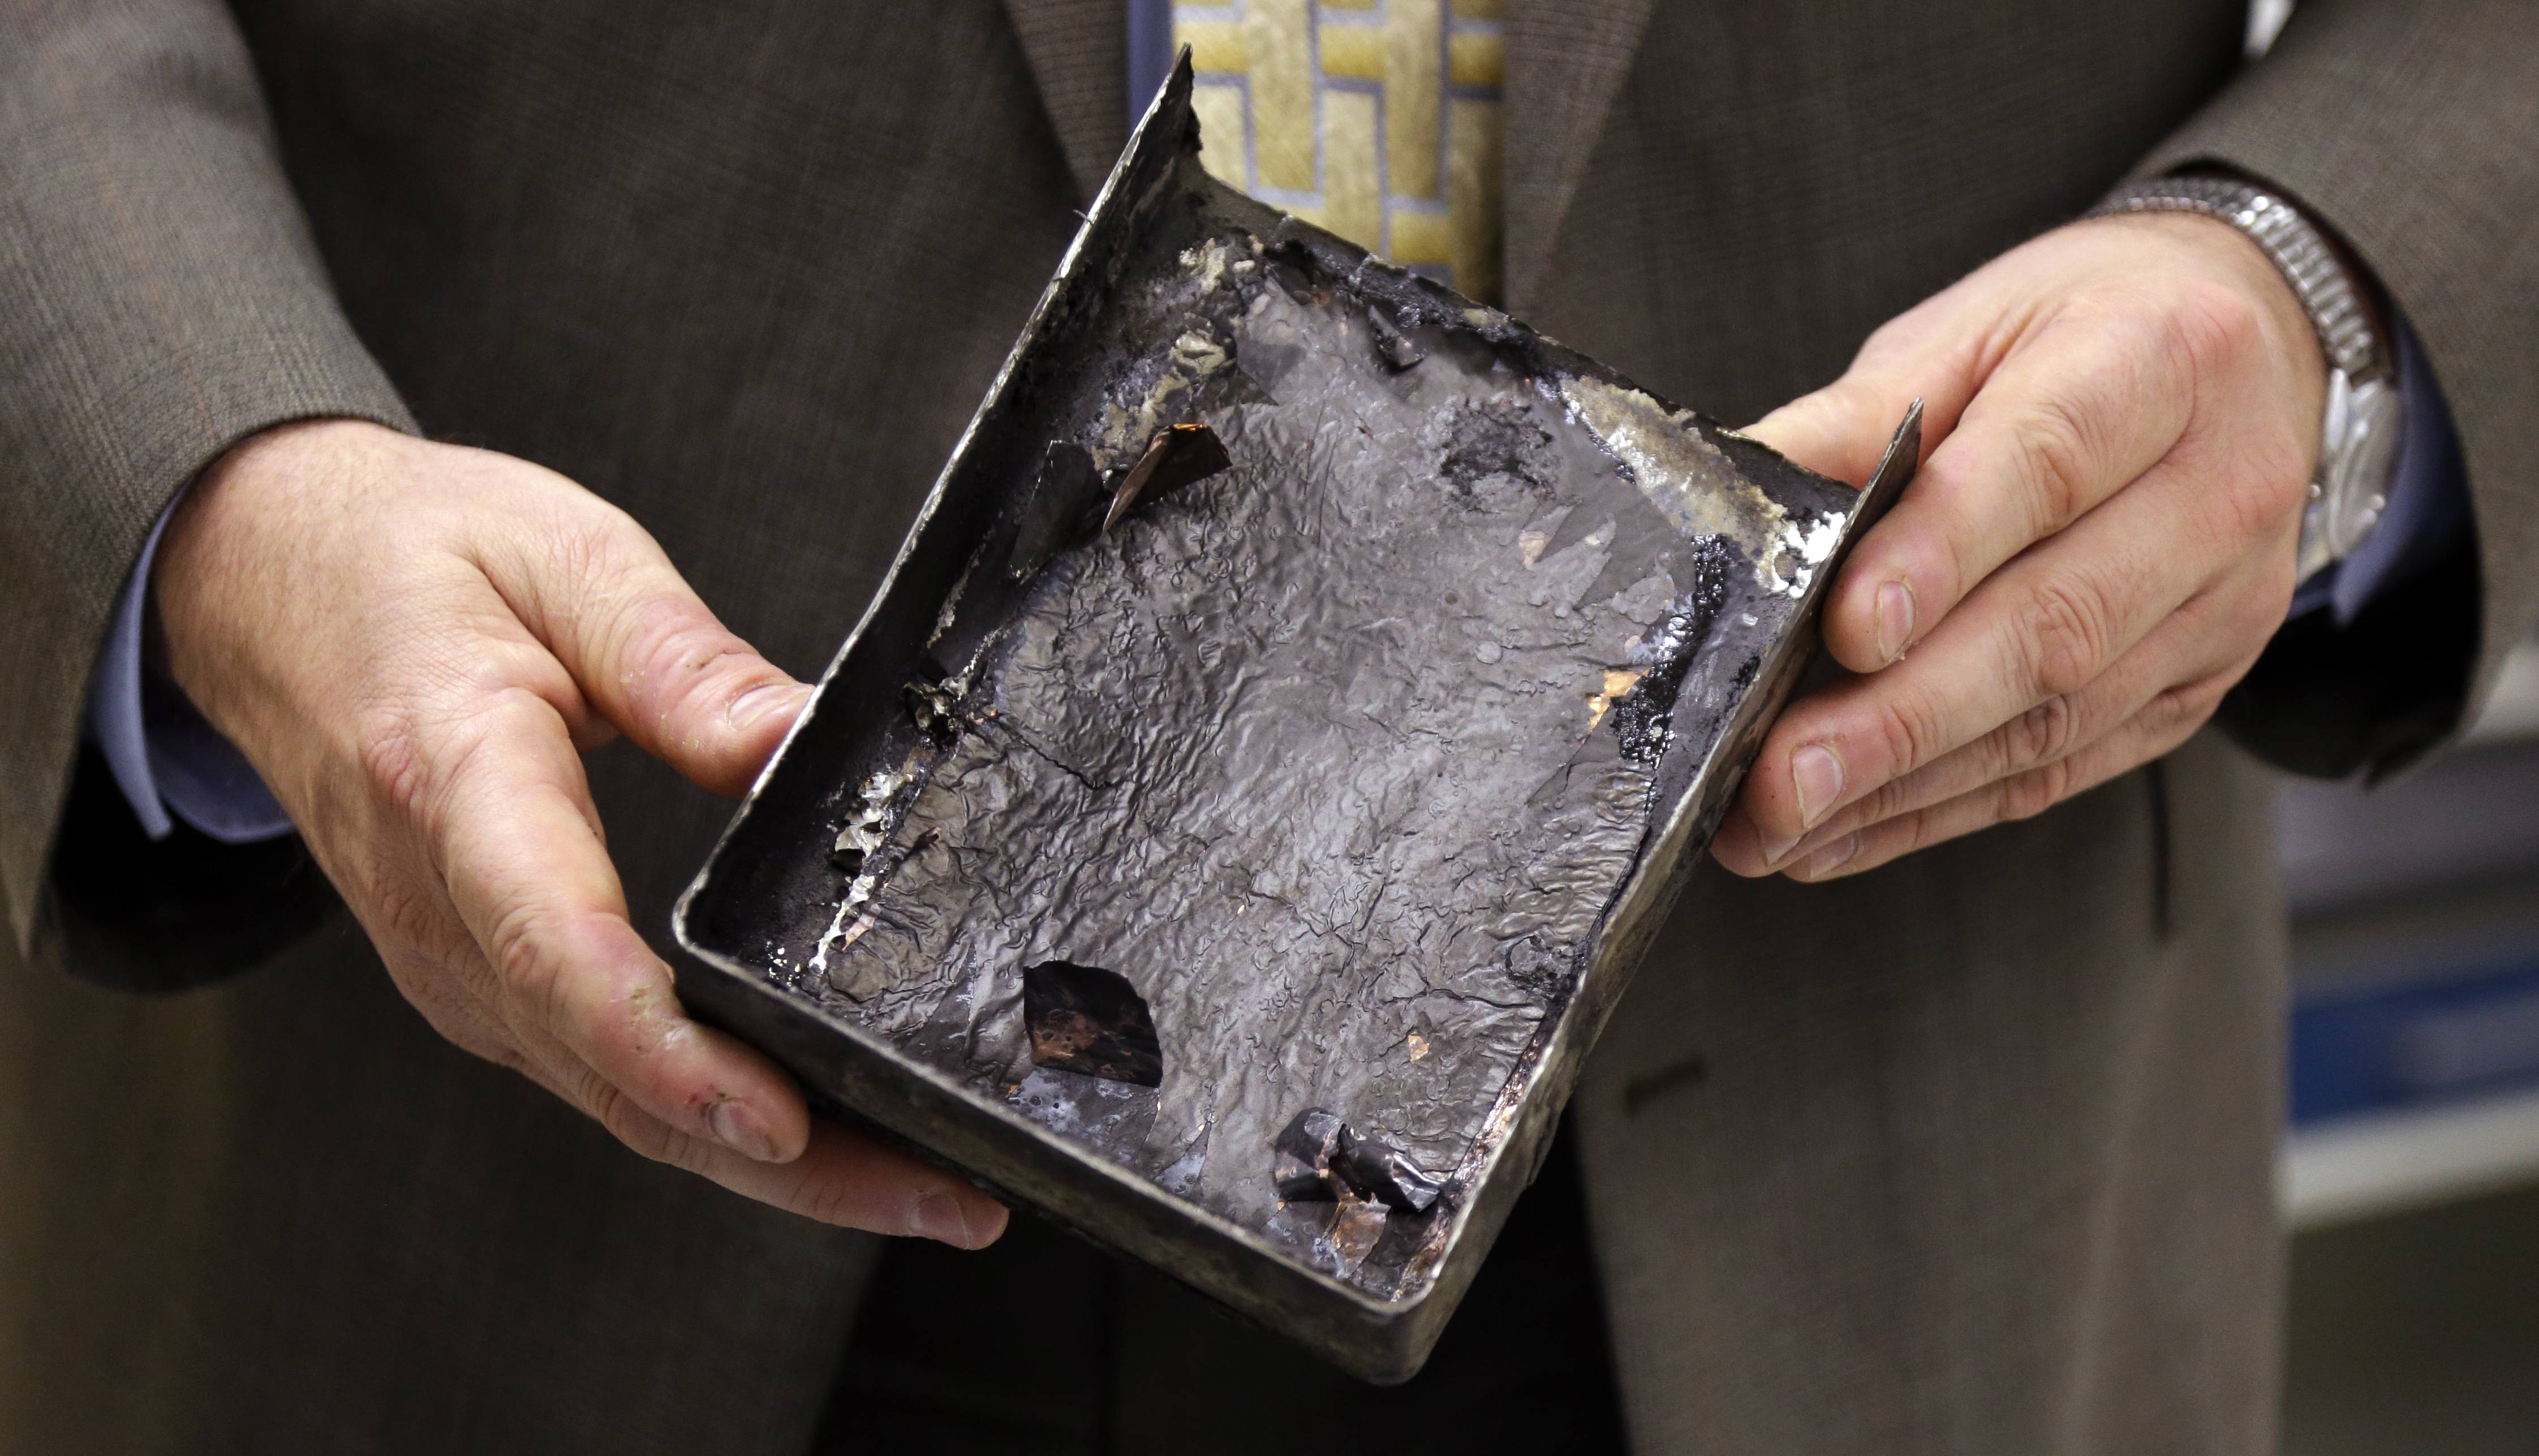 In this Jan. 24, 2014 photo, National Transportation Safety Board's Joseph Kolly, holds a fire-damaged battery casing from the Japan Airlines Boeing 787 Dreamliner that caught fire at Logan International Airport in Boston.